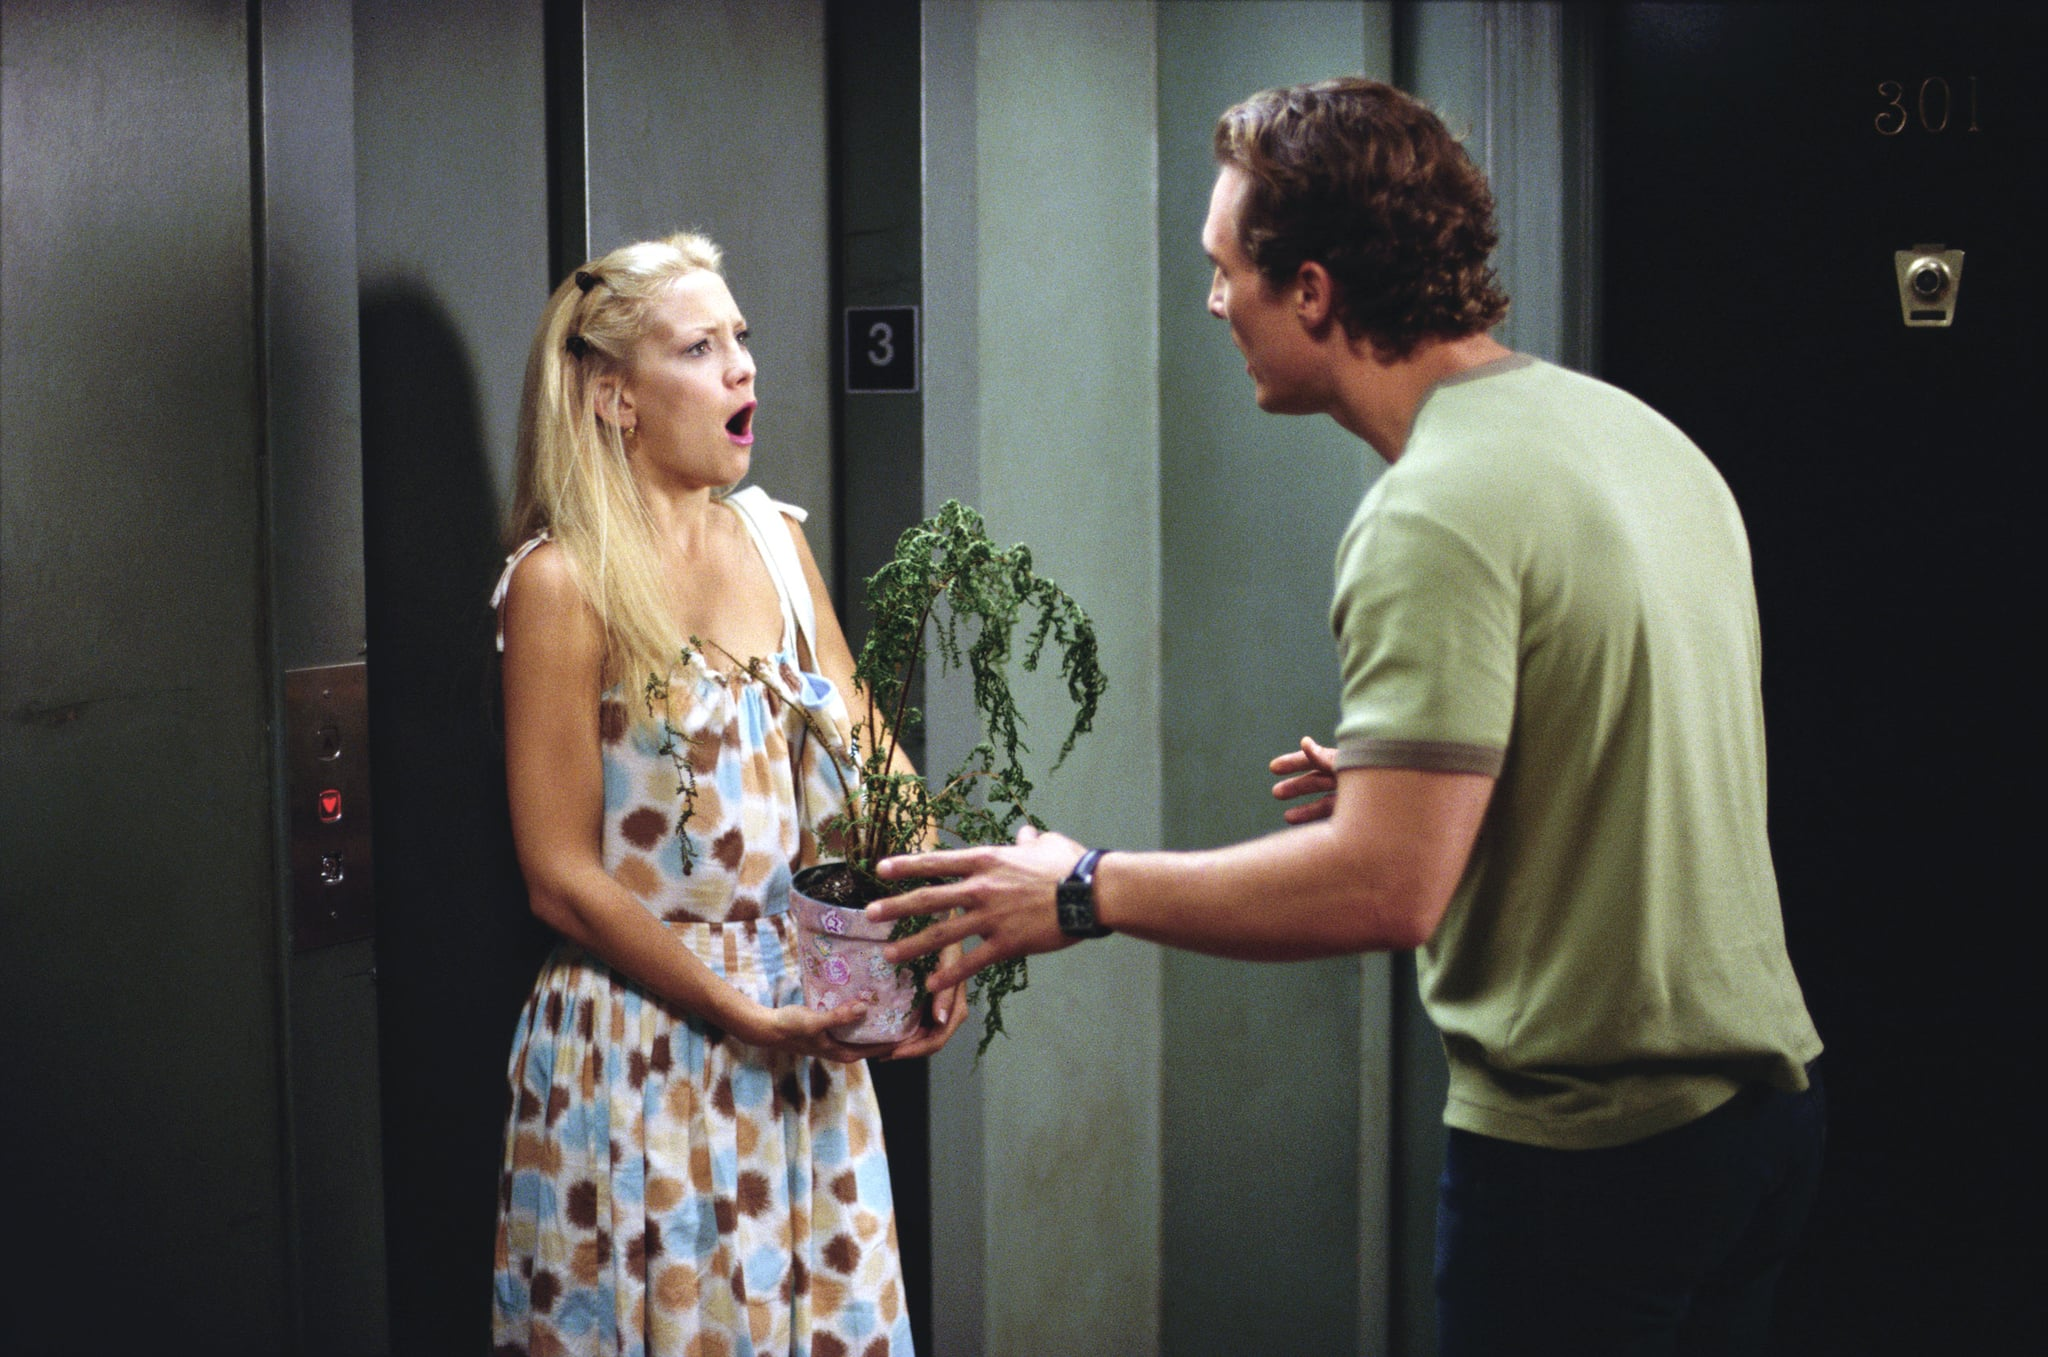 HOW TO LOSE A GUY IN 10 DAYS, Kate Hudson, Matthew McConaughey, 2003, (c) Paramount/courtesy Everett Collection